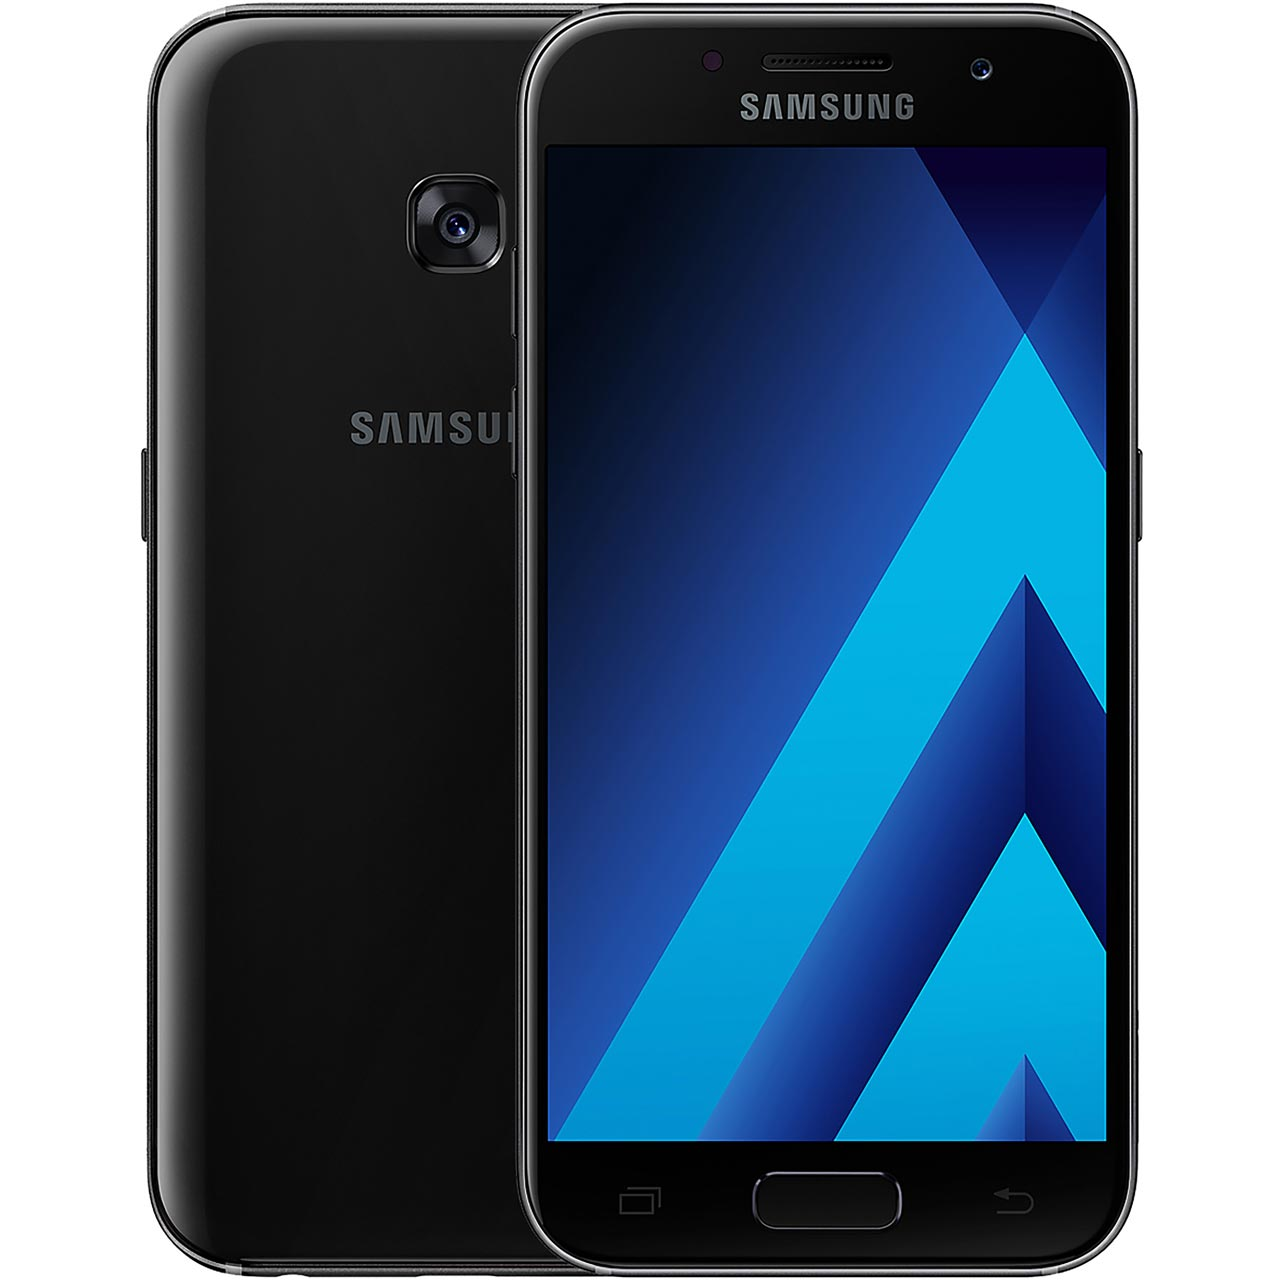 Samsung Galaxy A3 (2017) 16GB Smartphone in Black review